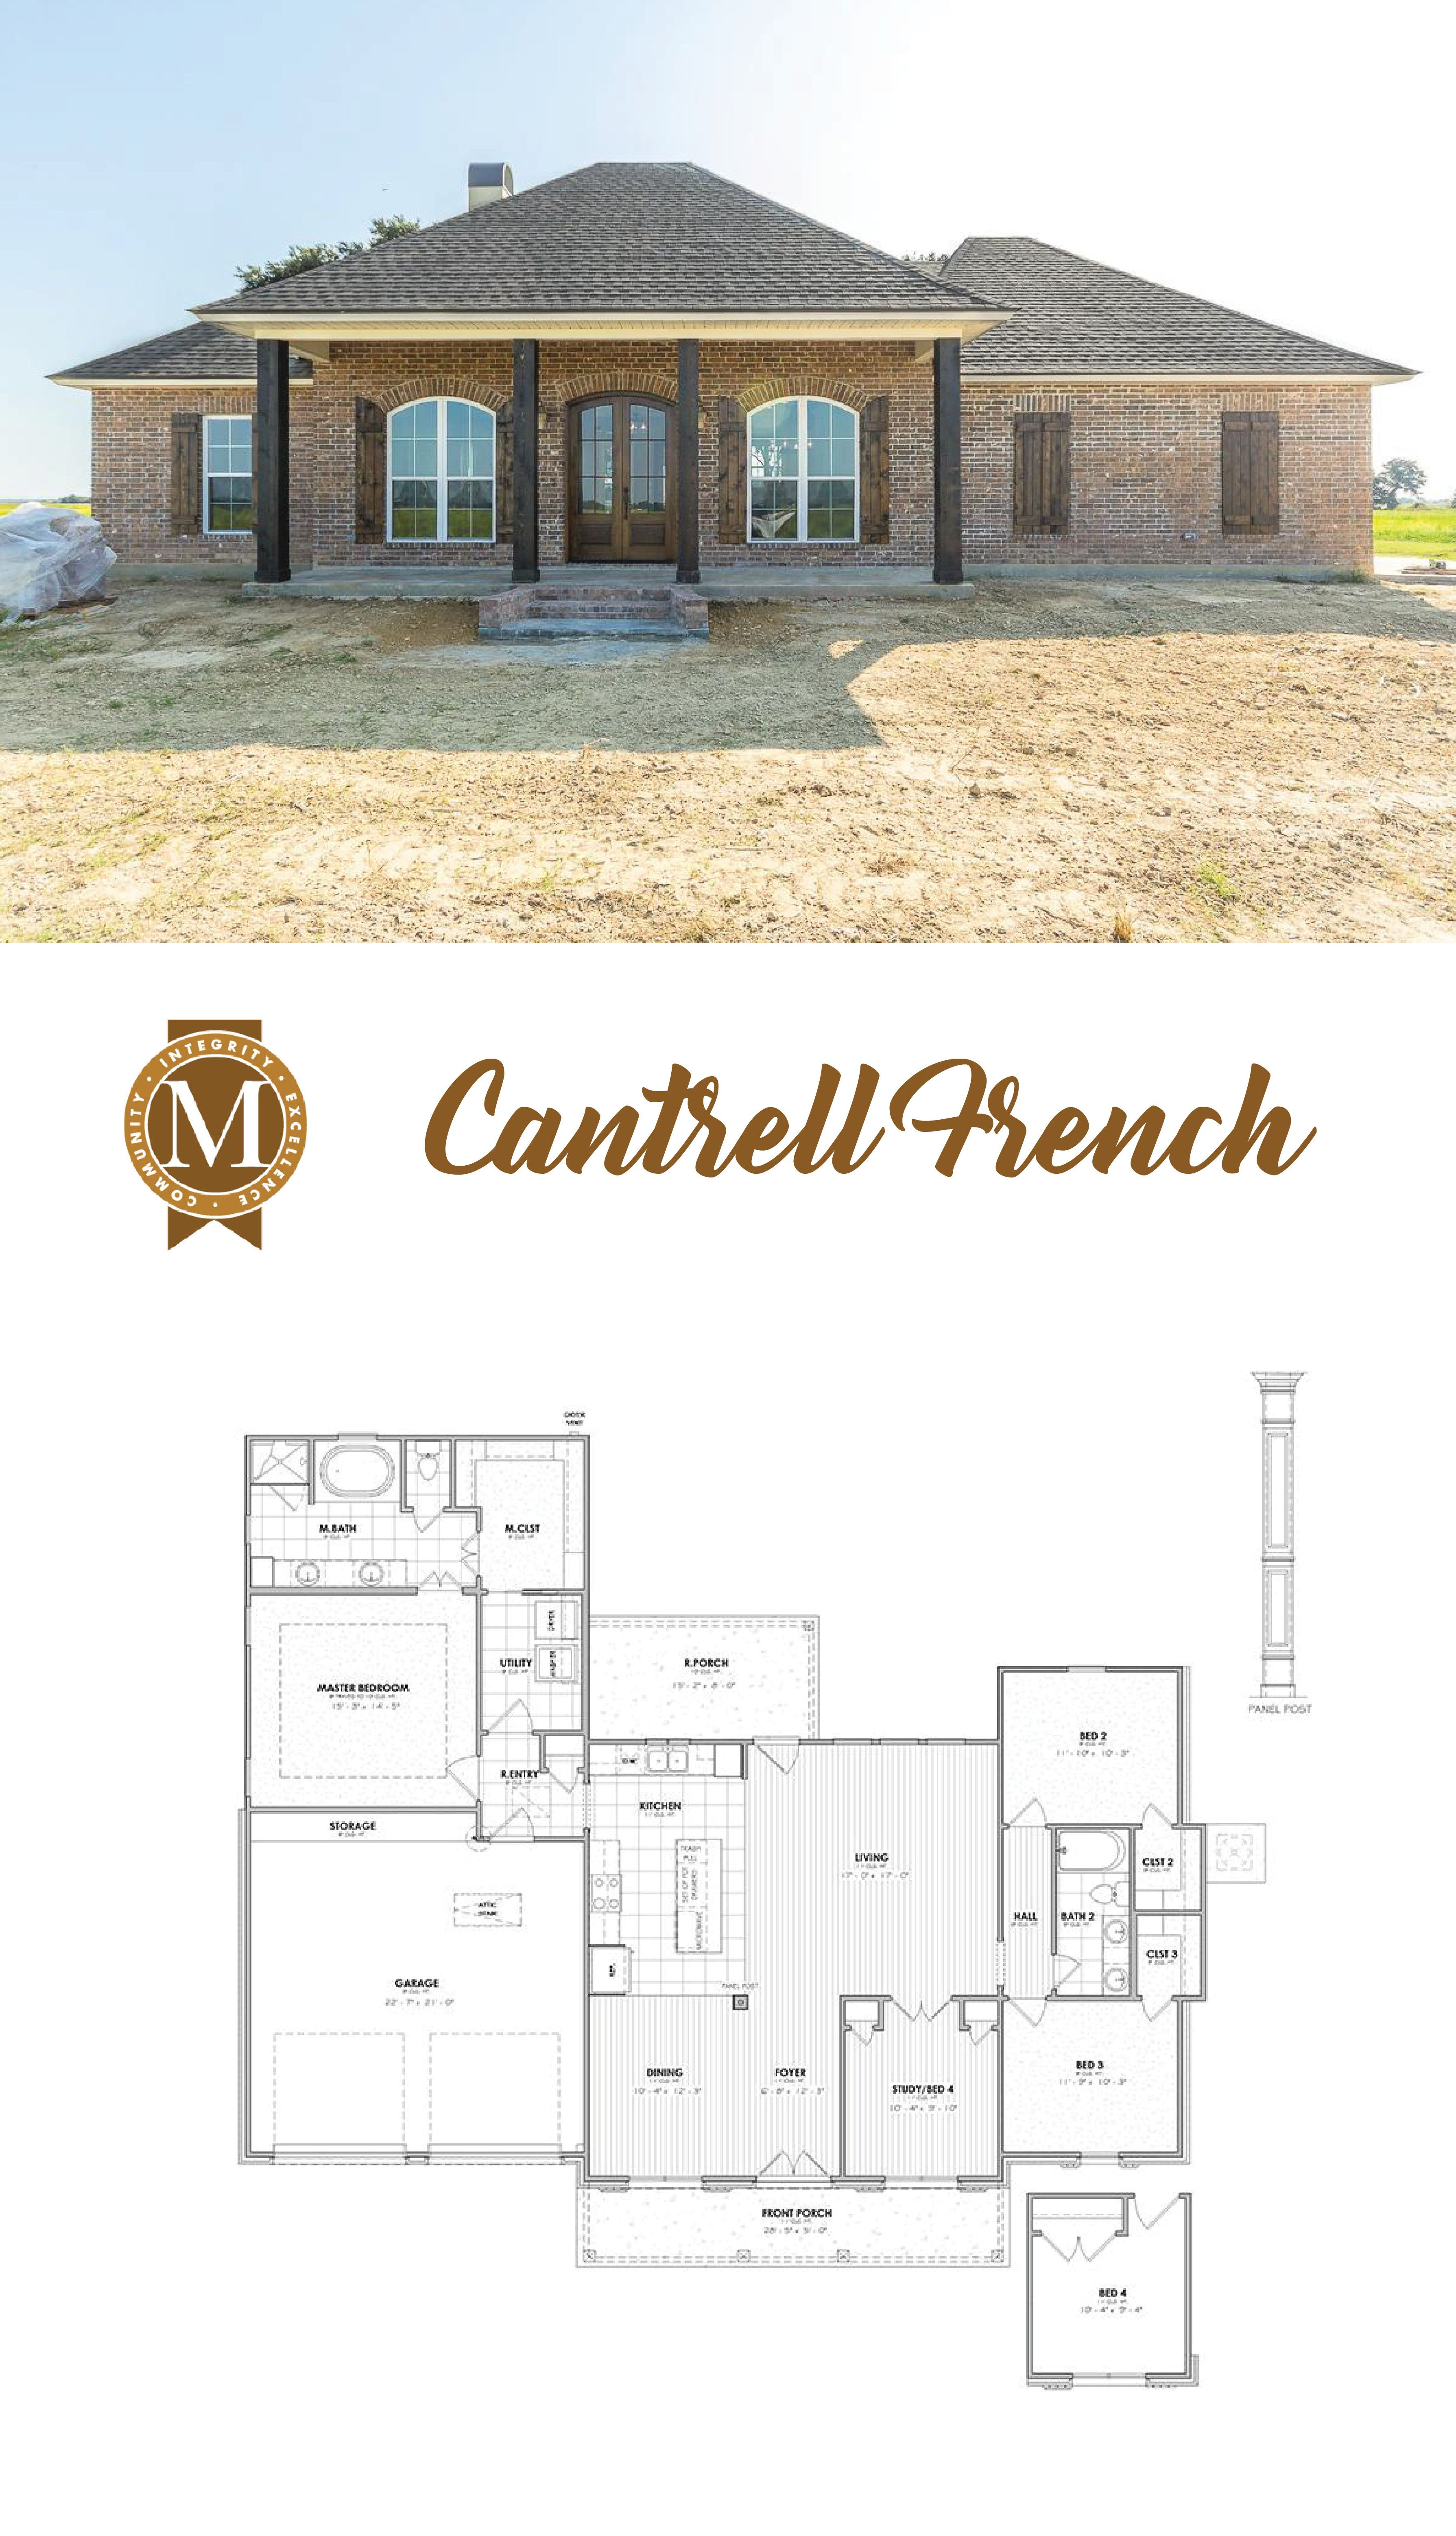 Cantrell French Living Sq Ft 1 913 Bedrooms 4 Baths 2 Lake Charles Lafayette Louisiana Baton Rouge Dream House Plans New House Plans French Cottage